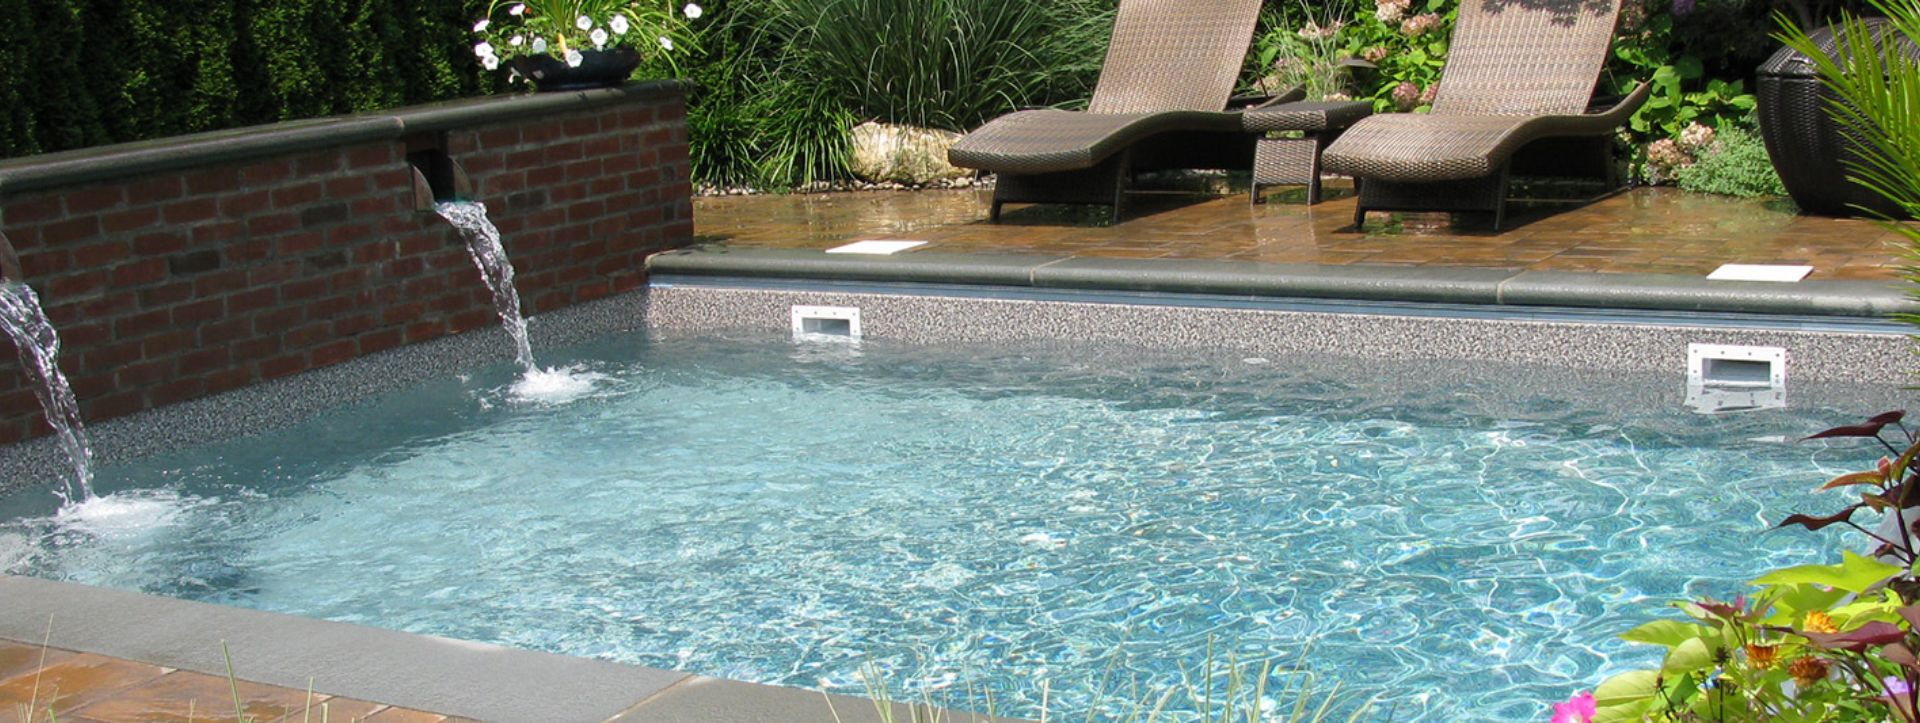 Home True Blue Swimming Pools Dix Hills, NY (631) 757-7665